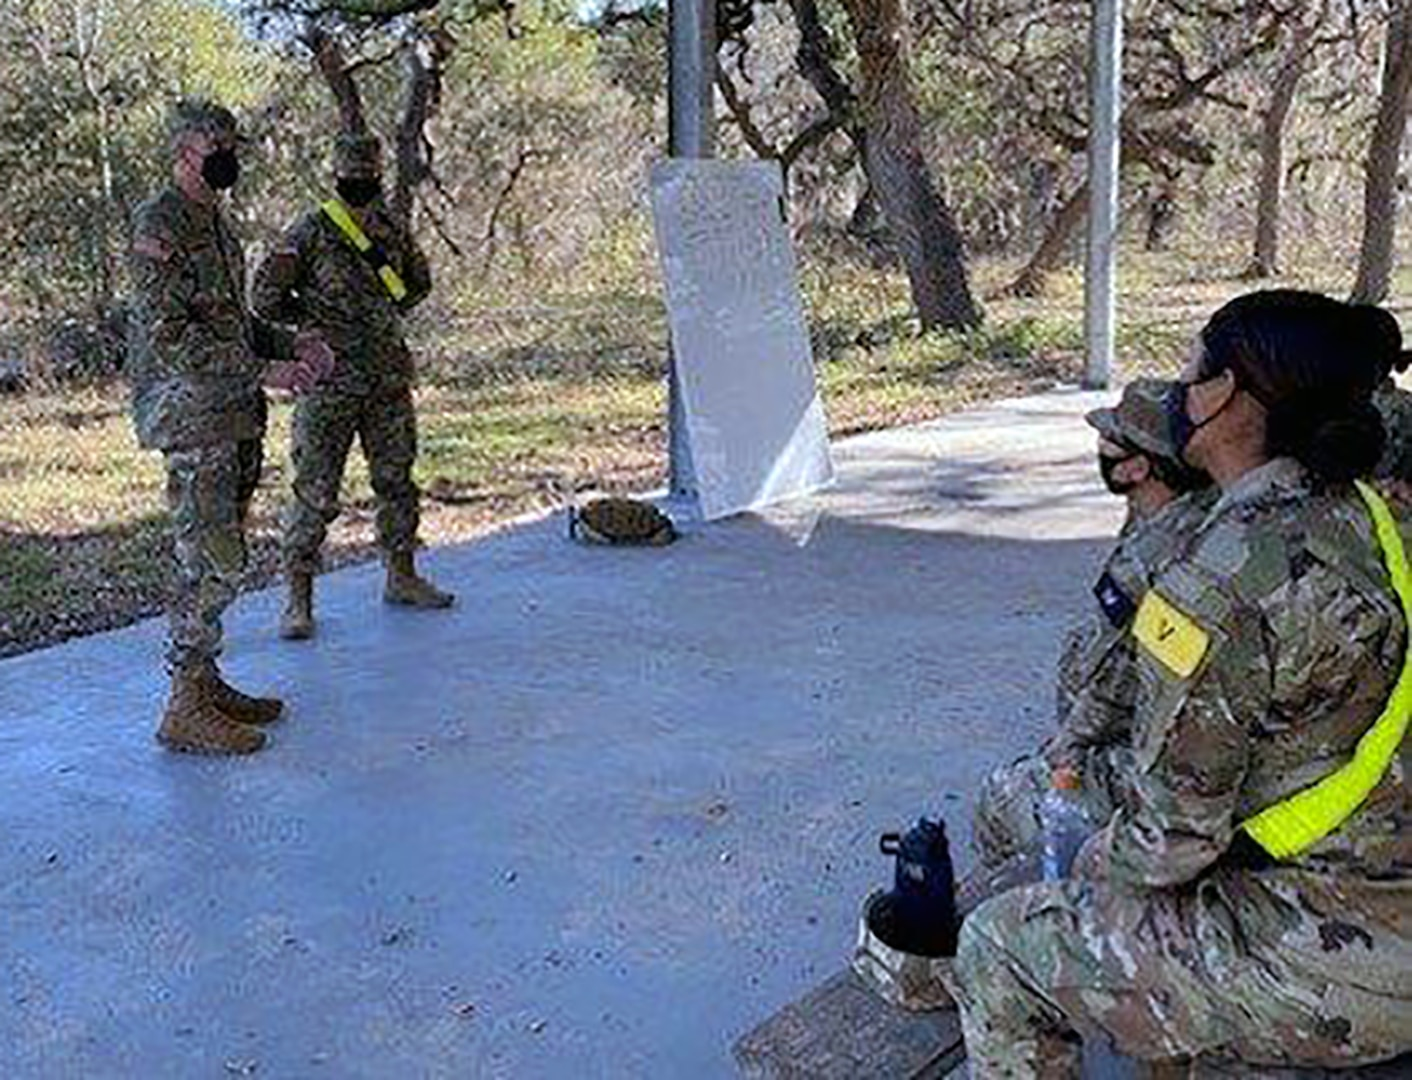 Pvt. Drew Smoker receives a command coin for excellence from U.S. Army Medical Center of Excellence Command Sgt. Maj. Clark Charpentier while assigned to the MEDCoE during Soldier in Transition Training, or SiTT, last month at Joint Base San Antonio-Fort Sam Houston.